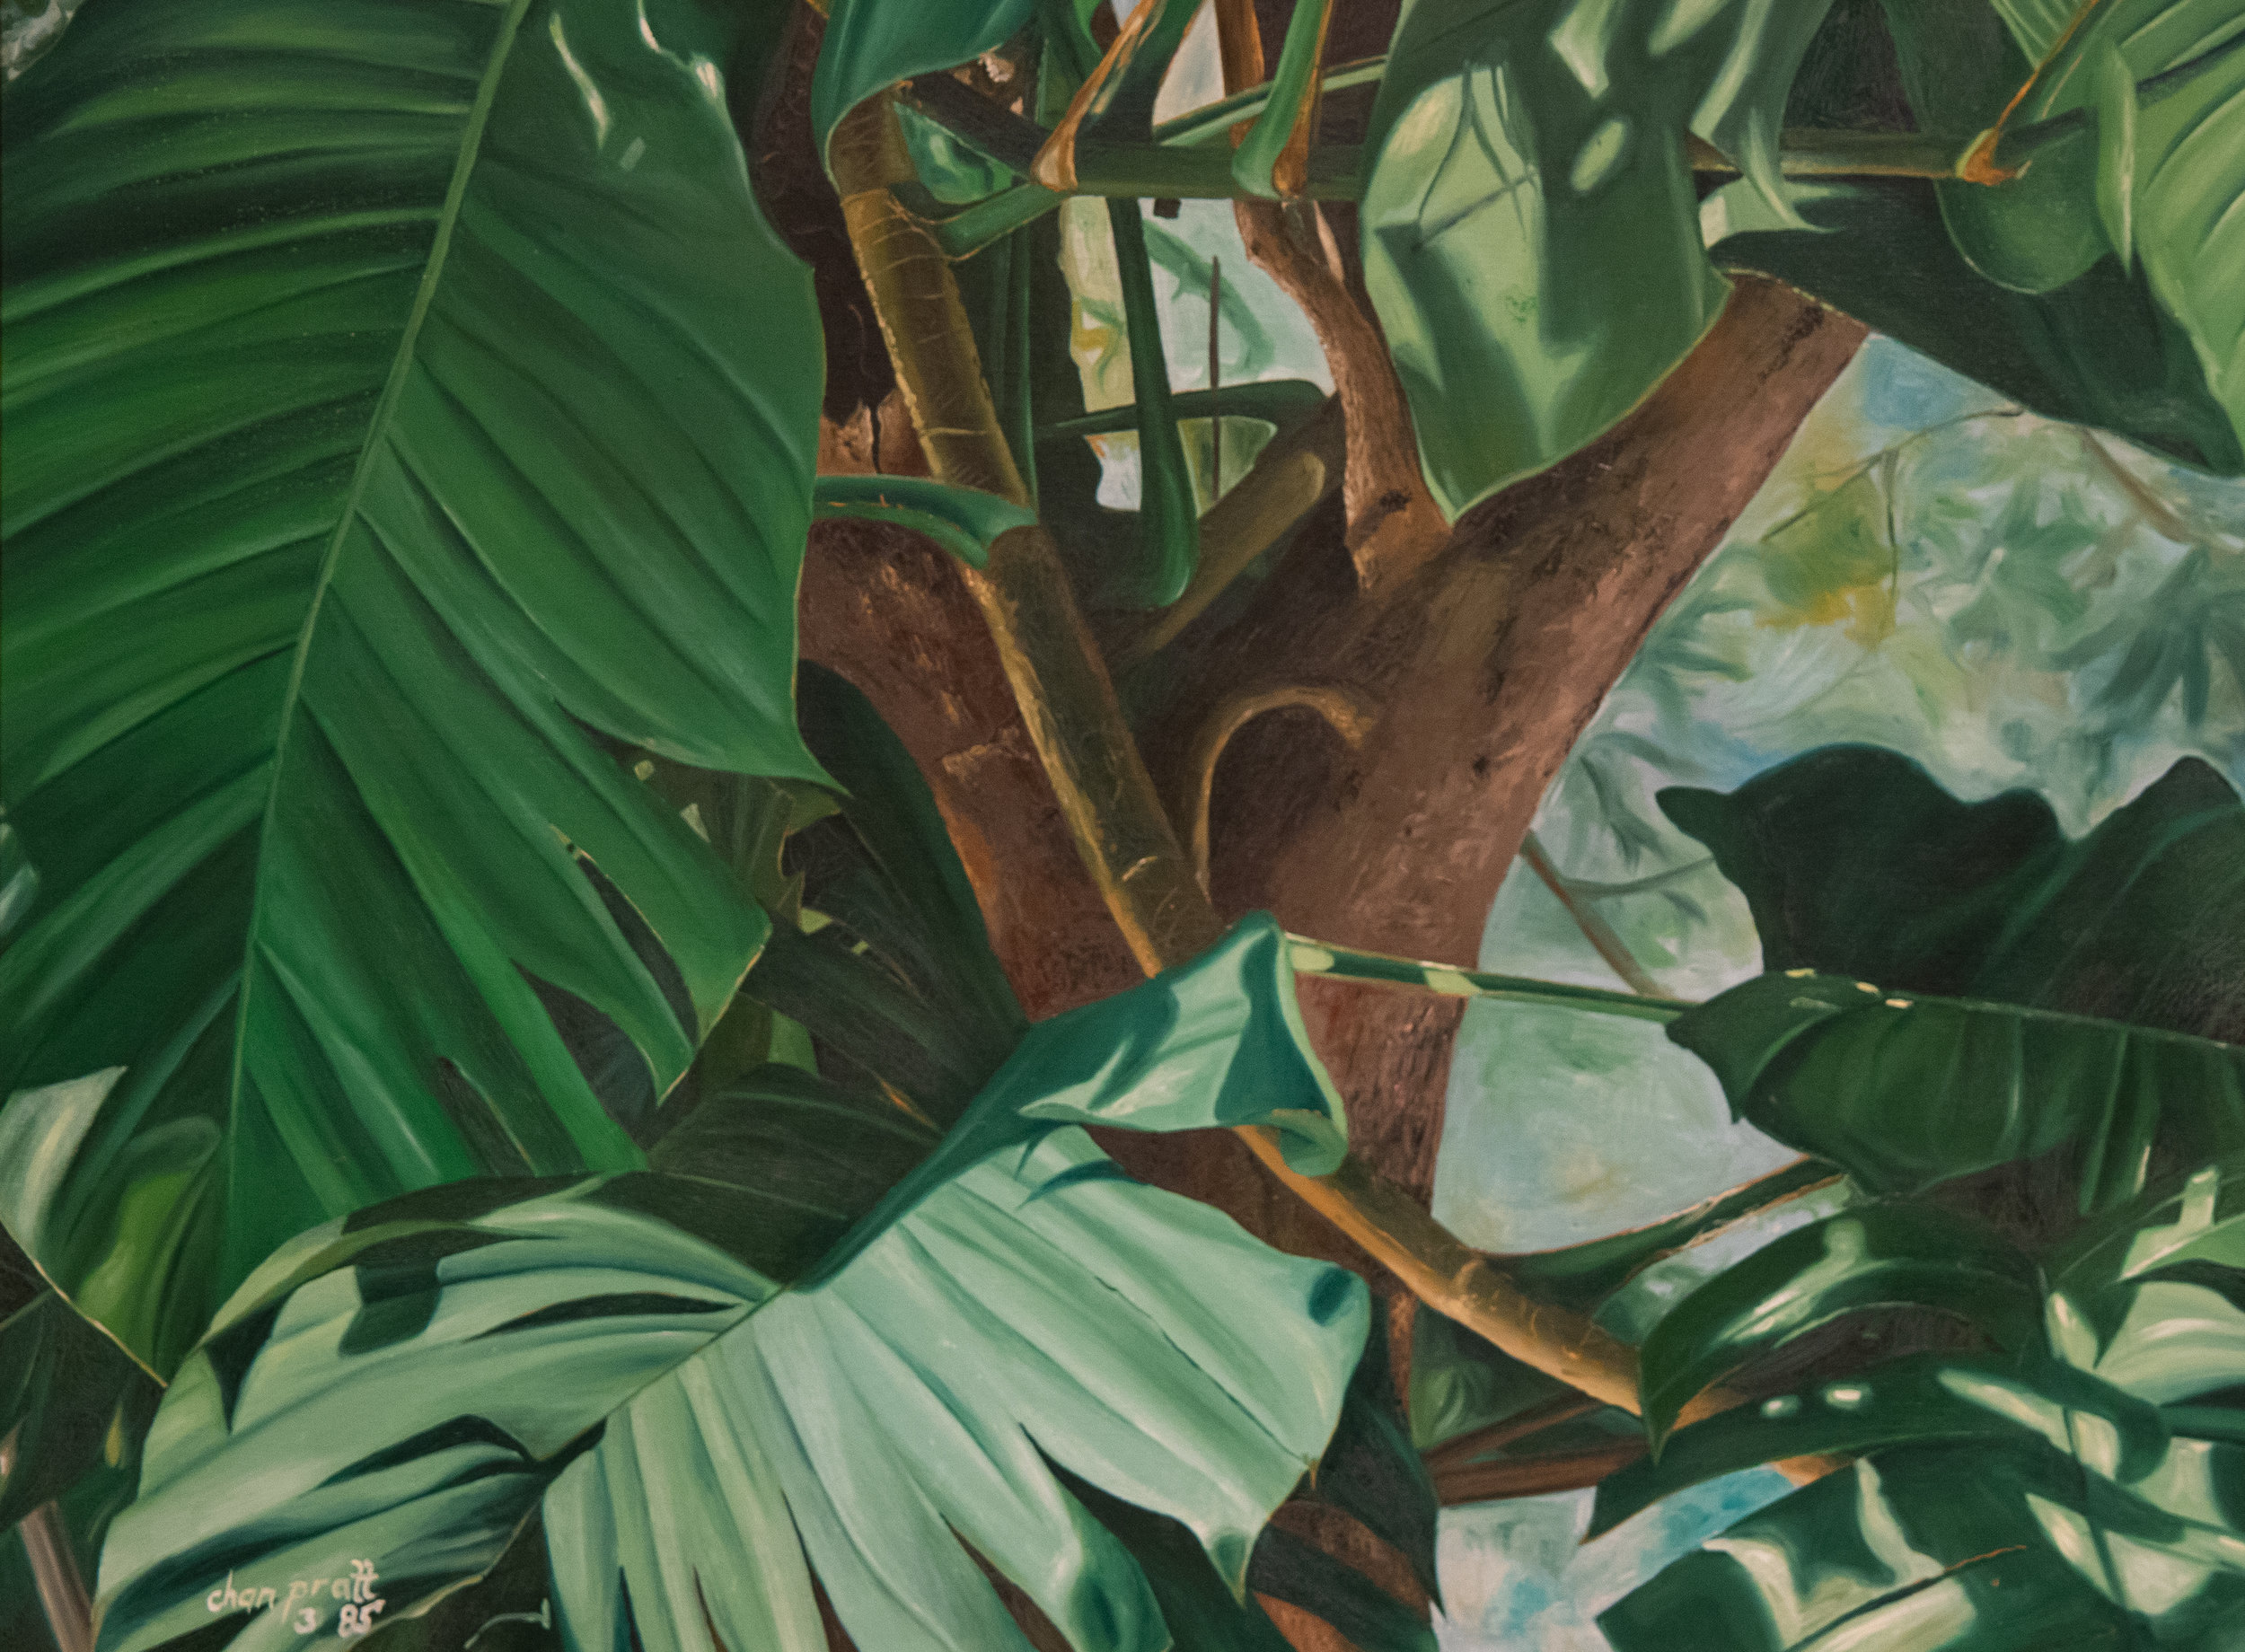 """""""Leaves"""" (1985). Chan Pratt. Acrylic on canvas, 18"""" x 24"""". Image courtesy of Gia and Don Kester."""